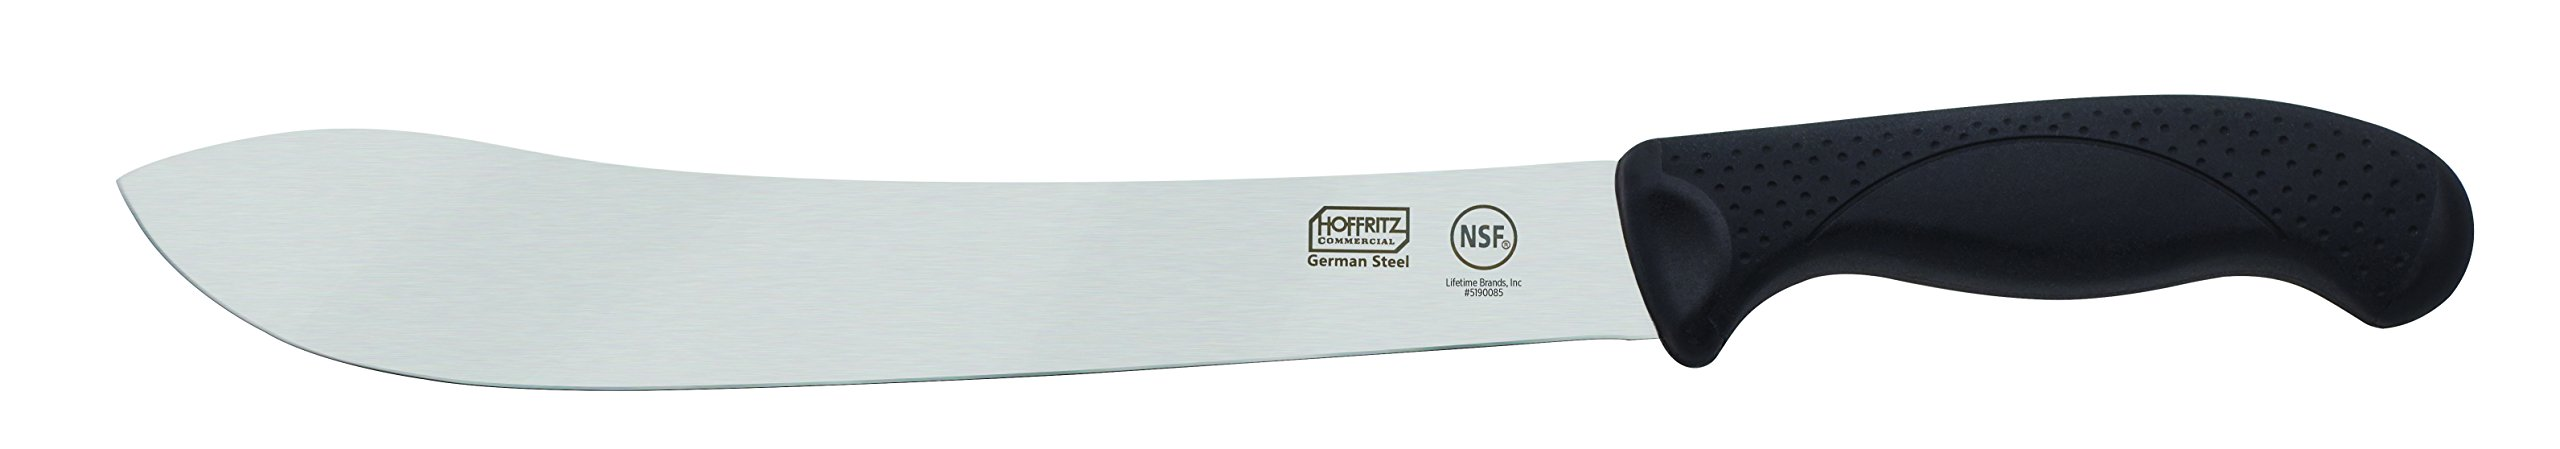 Hoffritz 5190085 Commercial Top Rated German Steel Butcher Knife with Non-Slip Handle for Home and Professional Use, 10'', Black